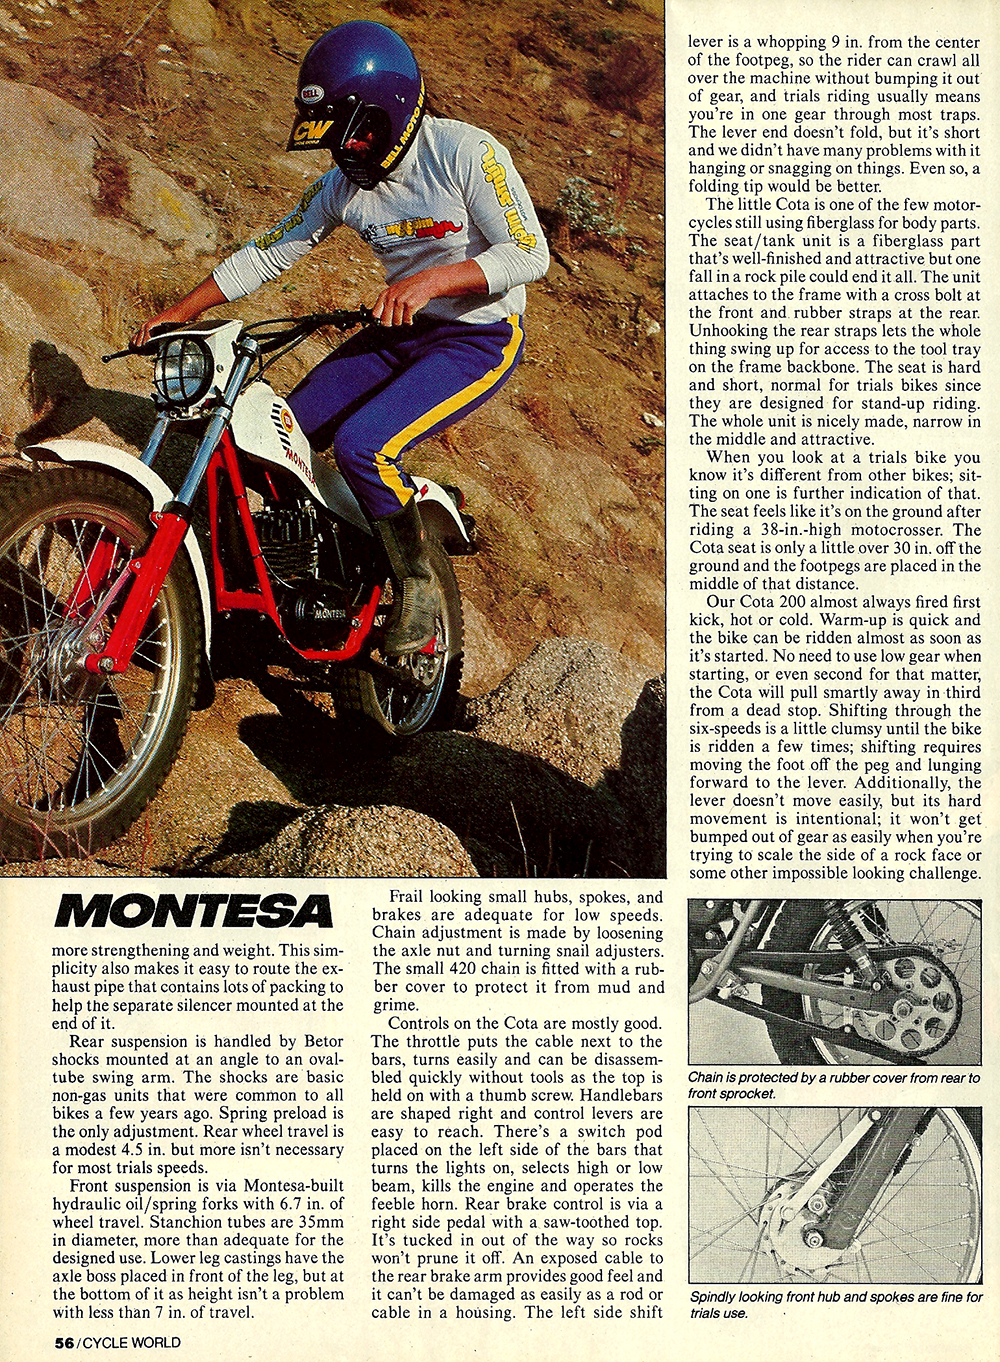 1982 Montesa cota 200 road test 03.jpg